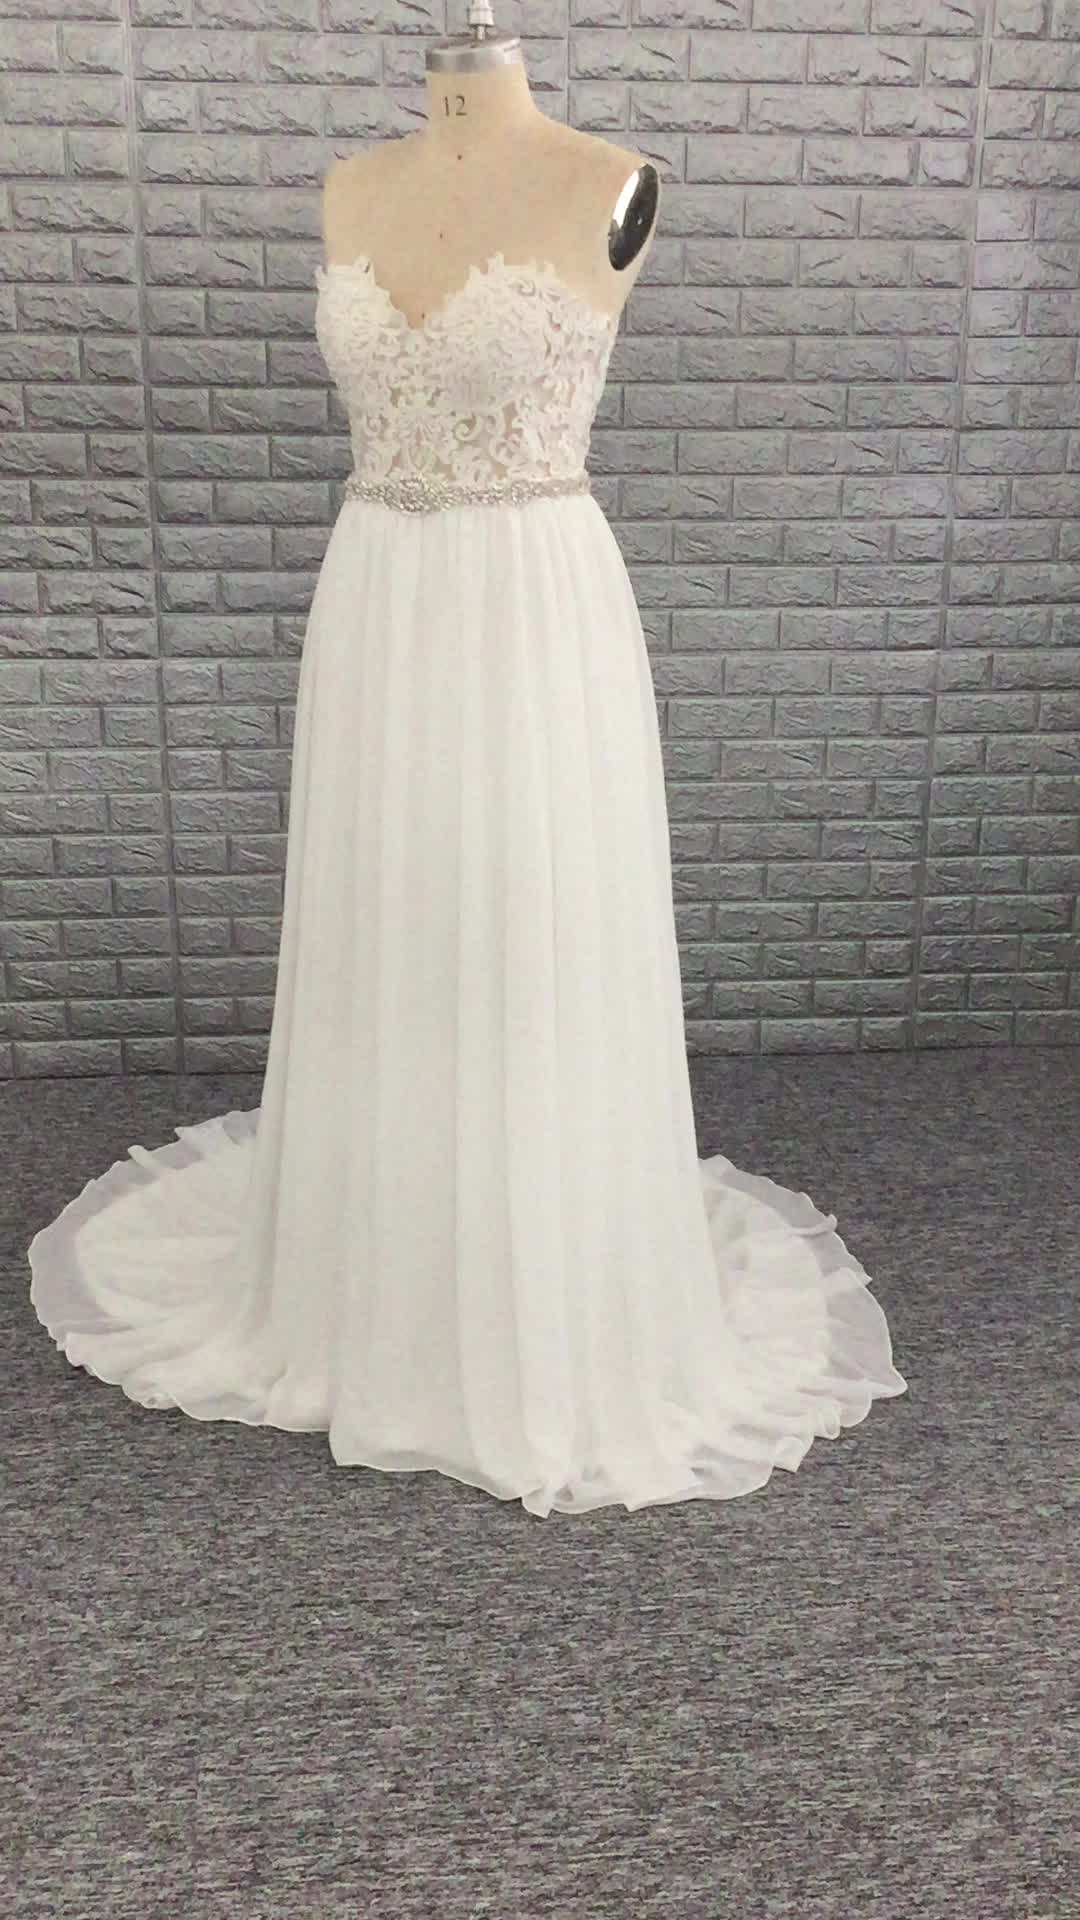 Beach Casual Wedding Dress Bridal Gown Ladies Pictures Of Latest ...